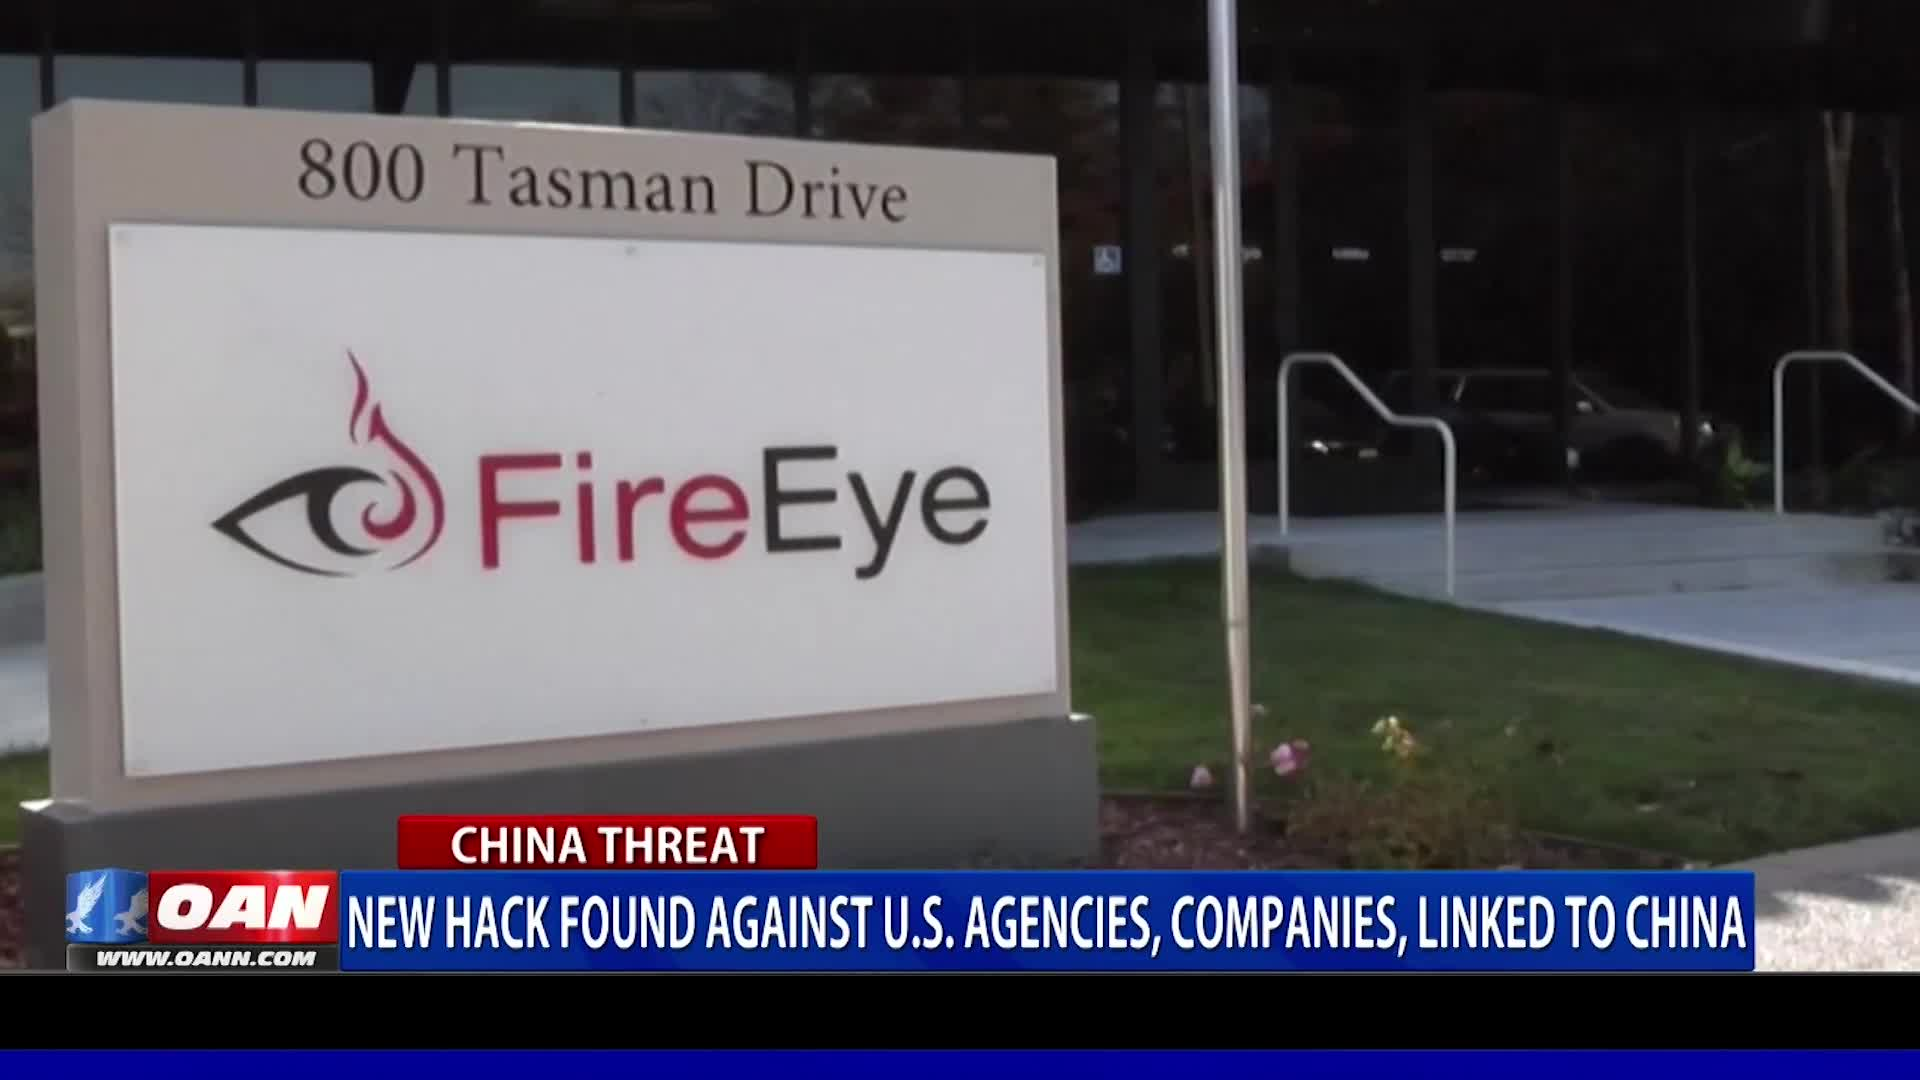 New hack found against U.S. agencies & companies, linked to China